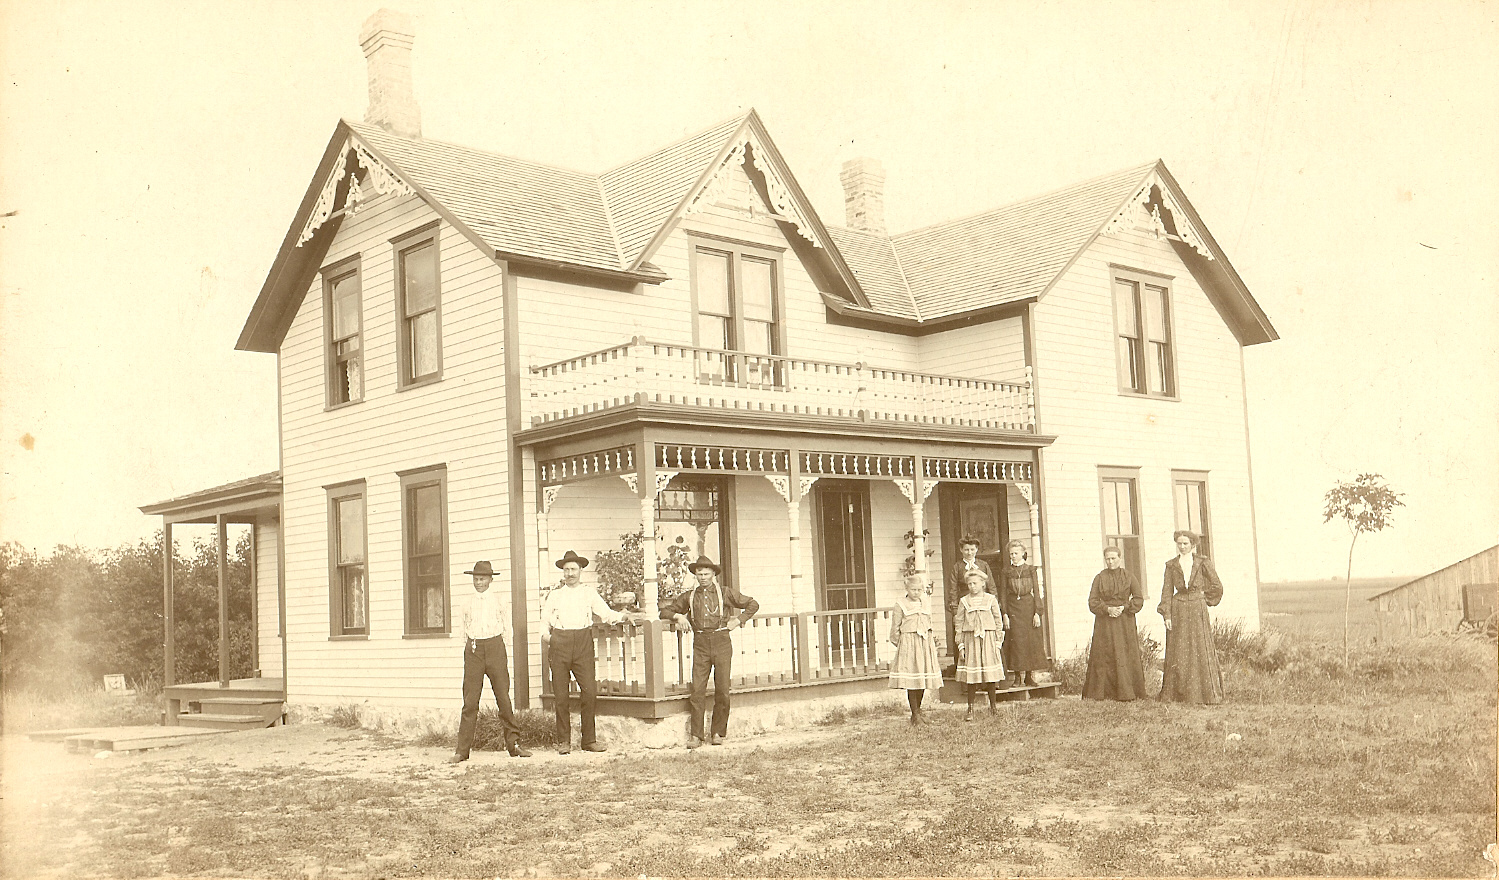 Pictures of 1900 farm houses